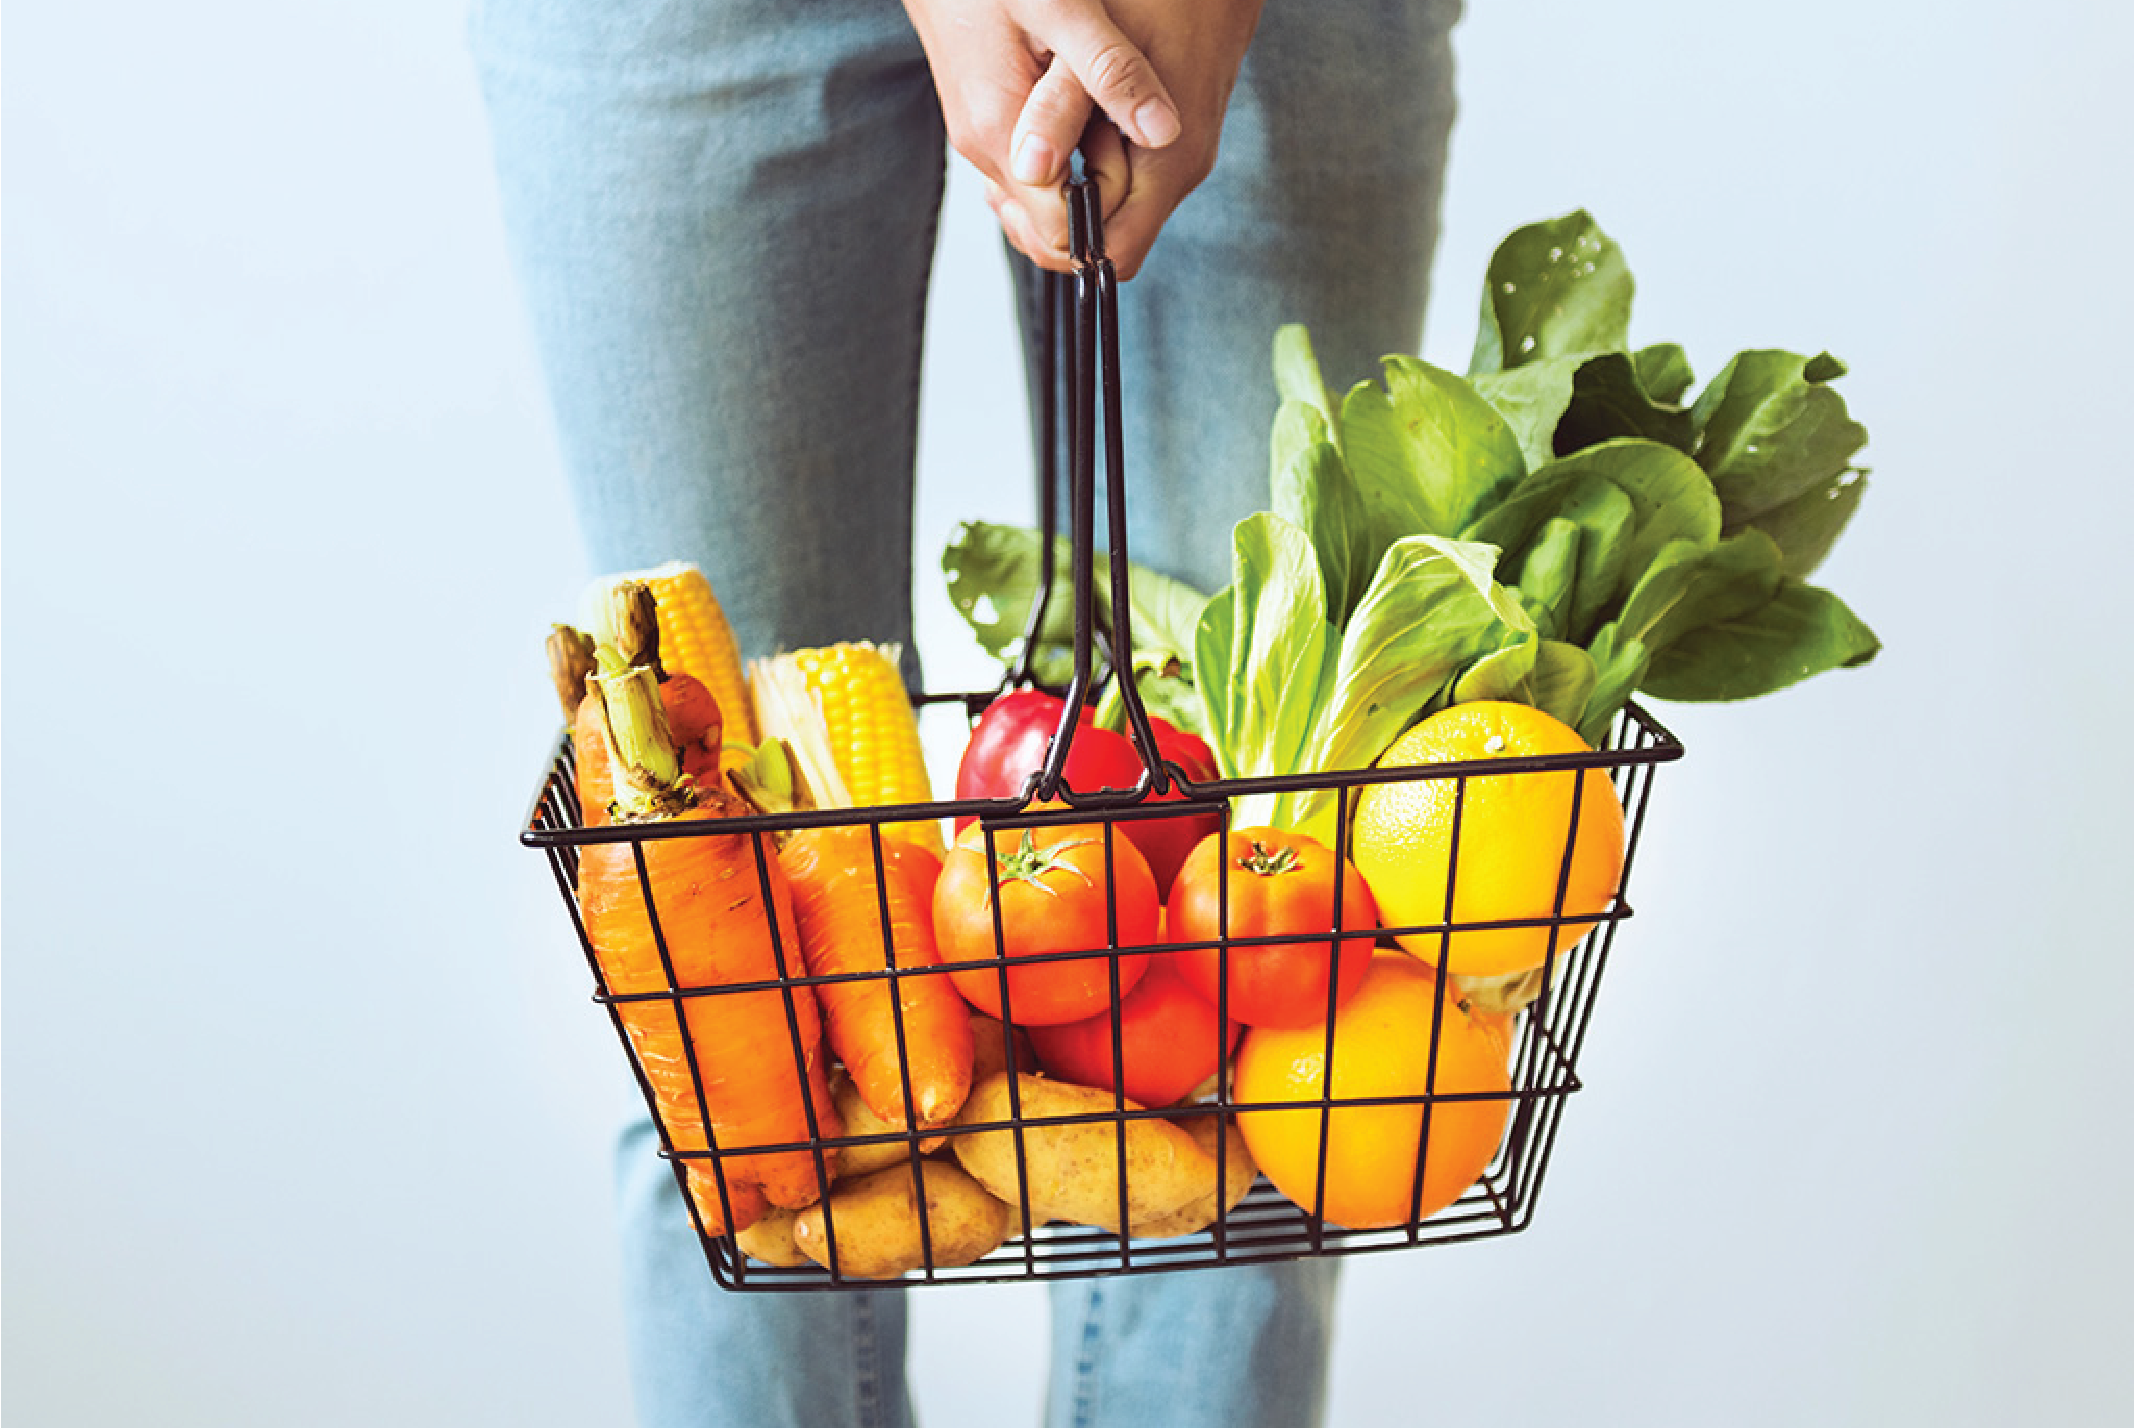 Save an hour or two each week with a grocery delivery app like Instacart or Shipt.